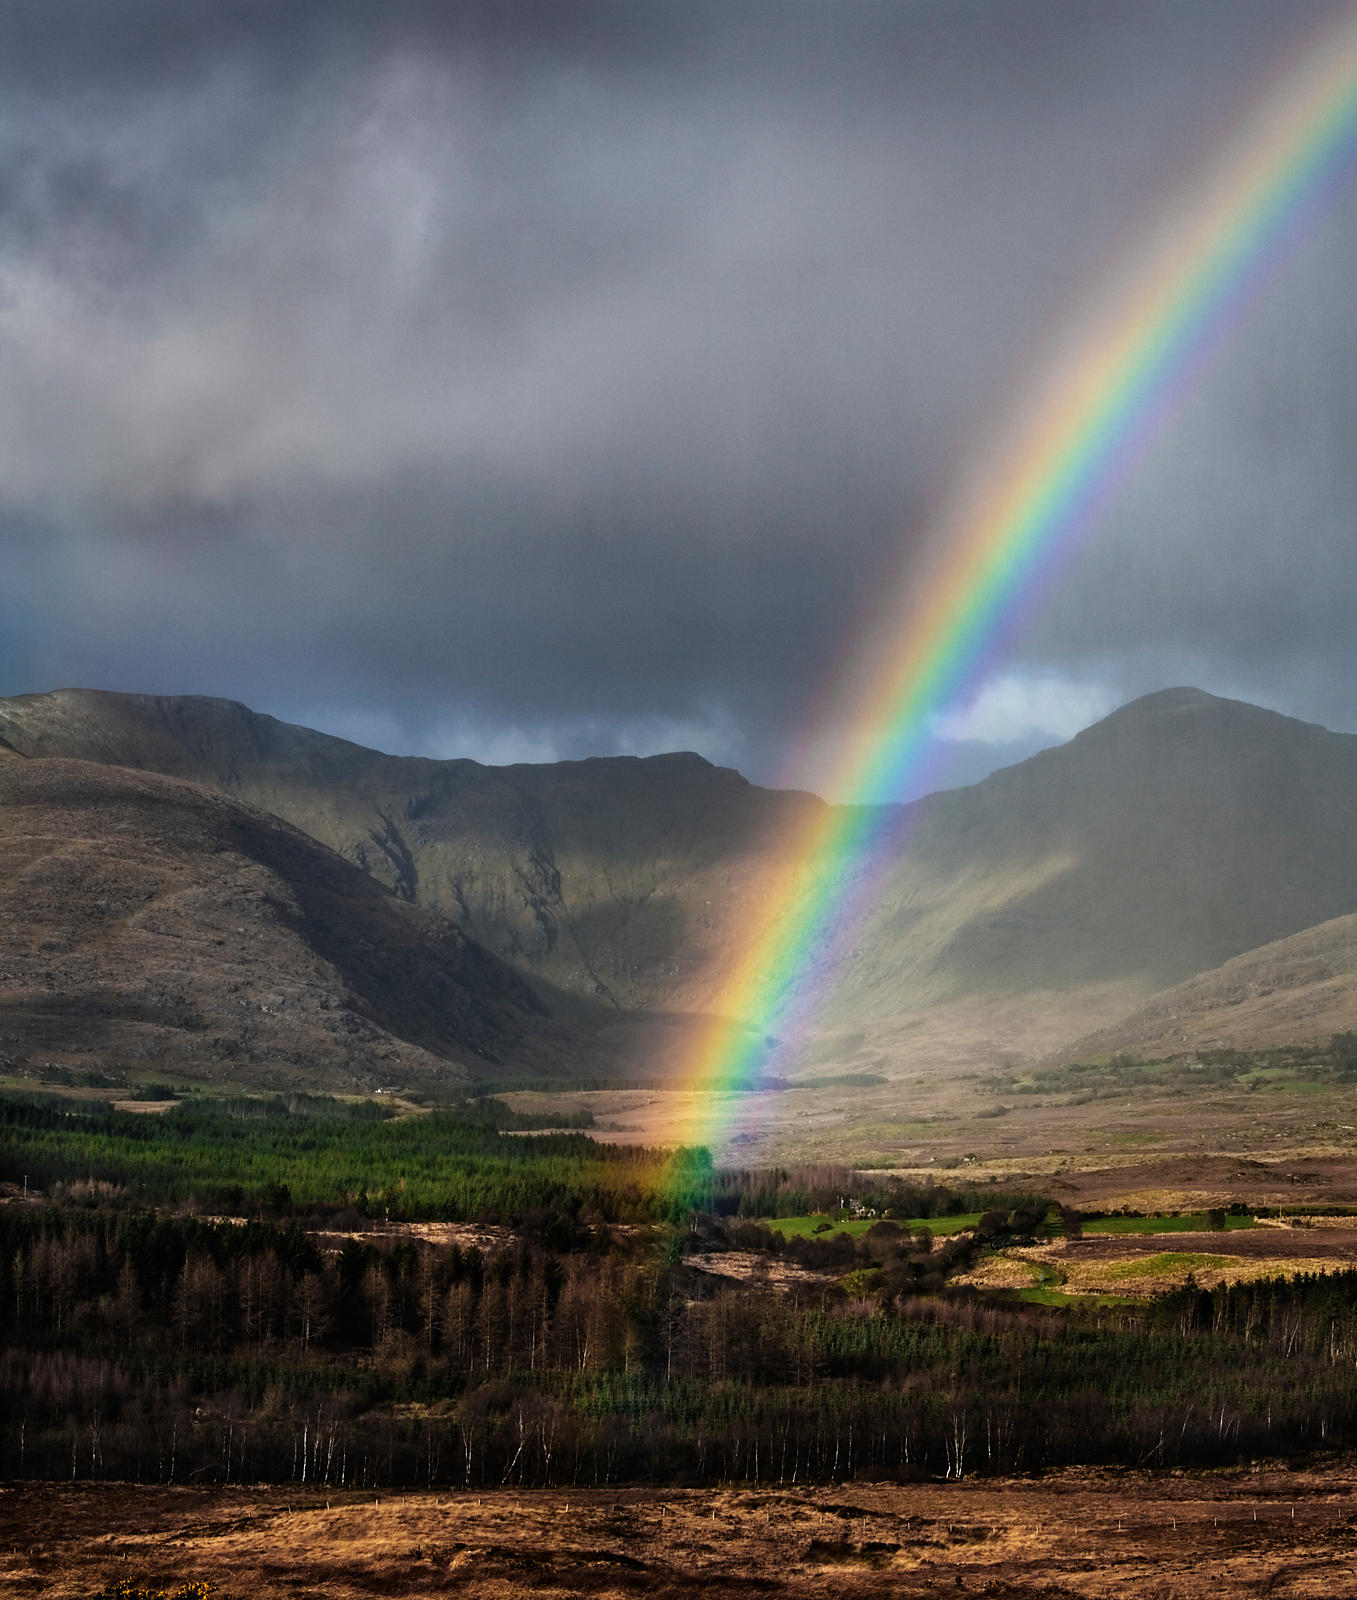 Rainbow in Kerry, on the west-coast of Ireland